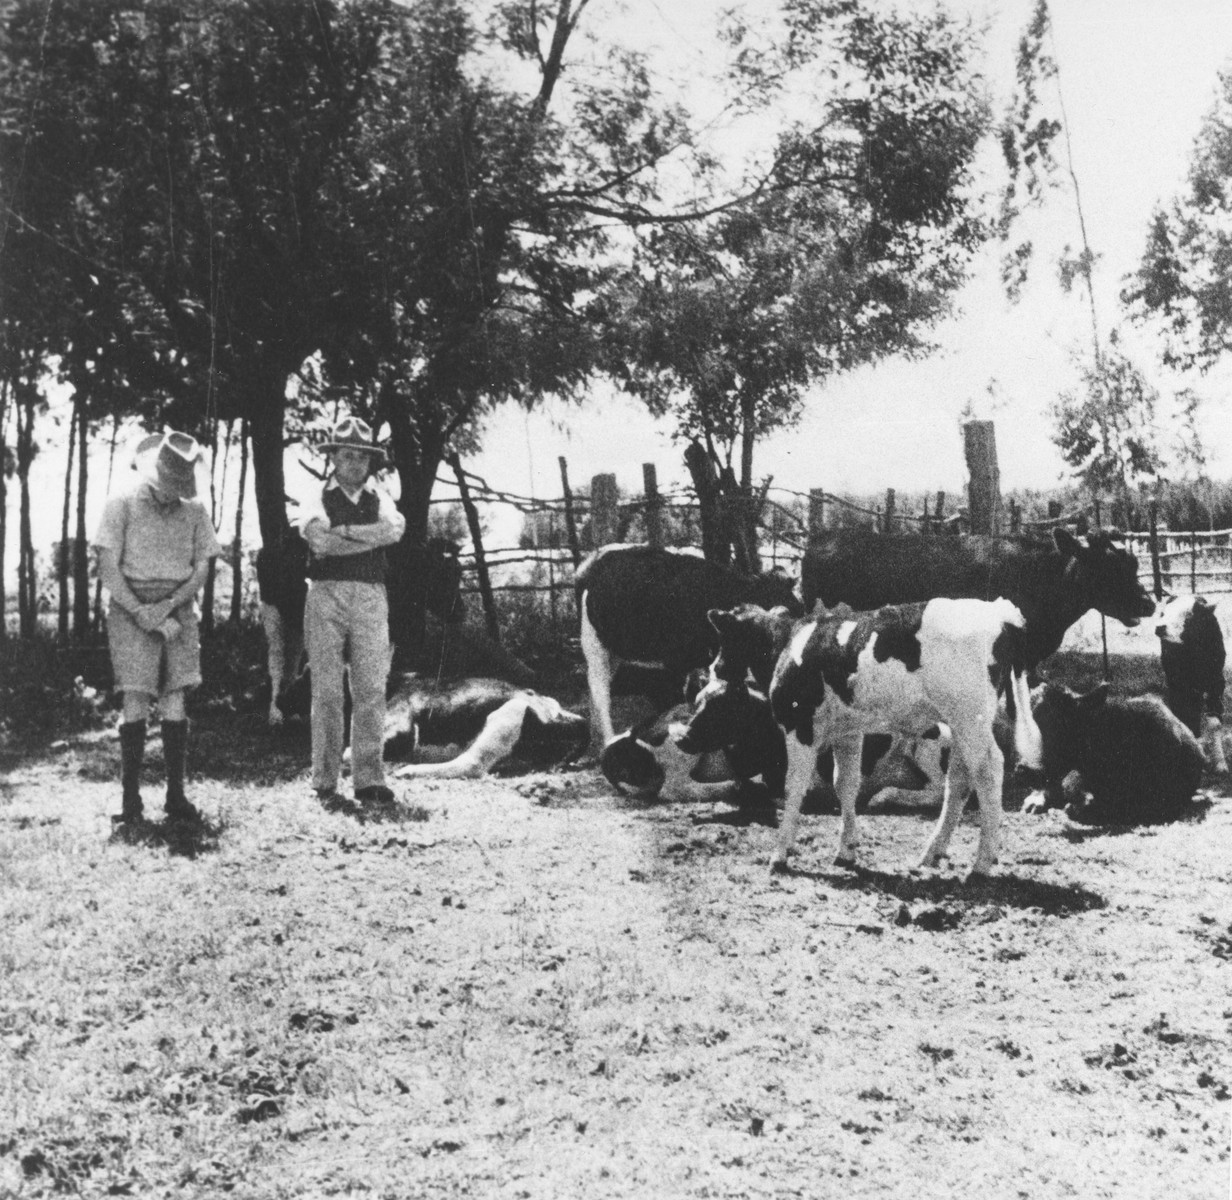 Two Jewish refugees from Germany stand among their dairy cows on their farm near Limuru, Kenya (Kiambu district), where they found refuge during World War II.  Pictured are George and Joseph Berg.